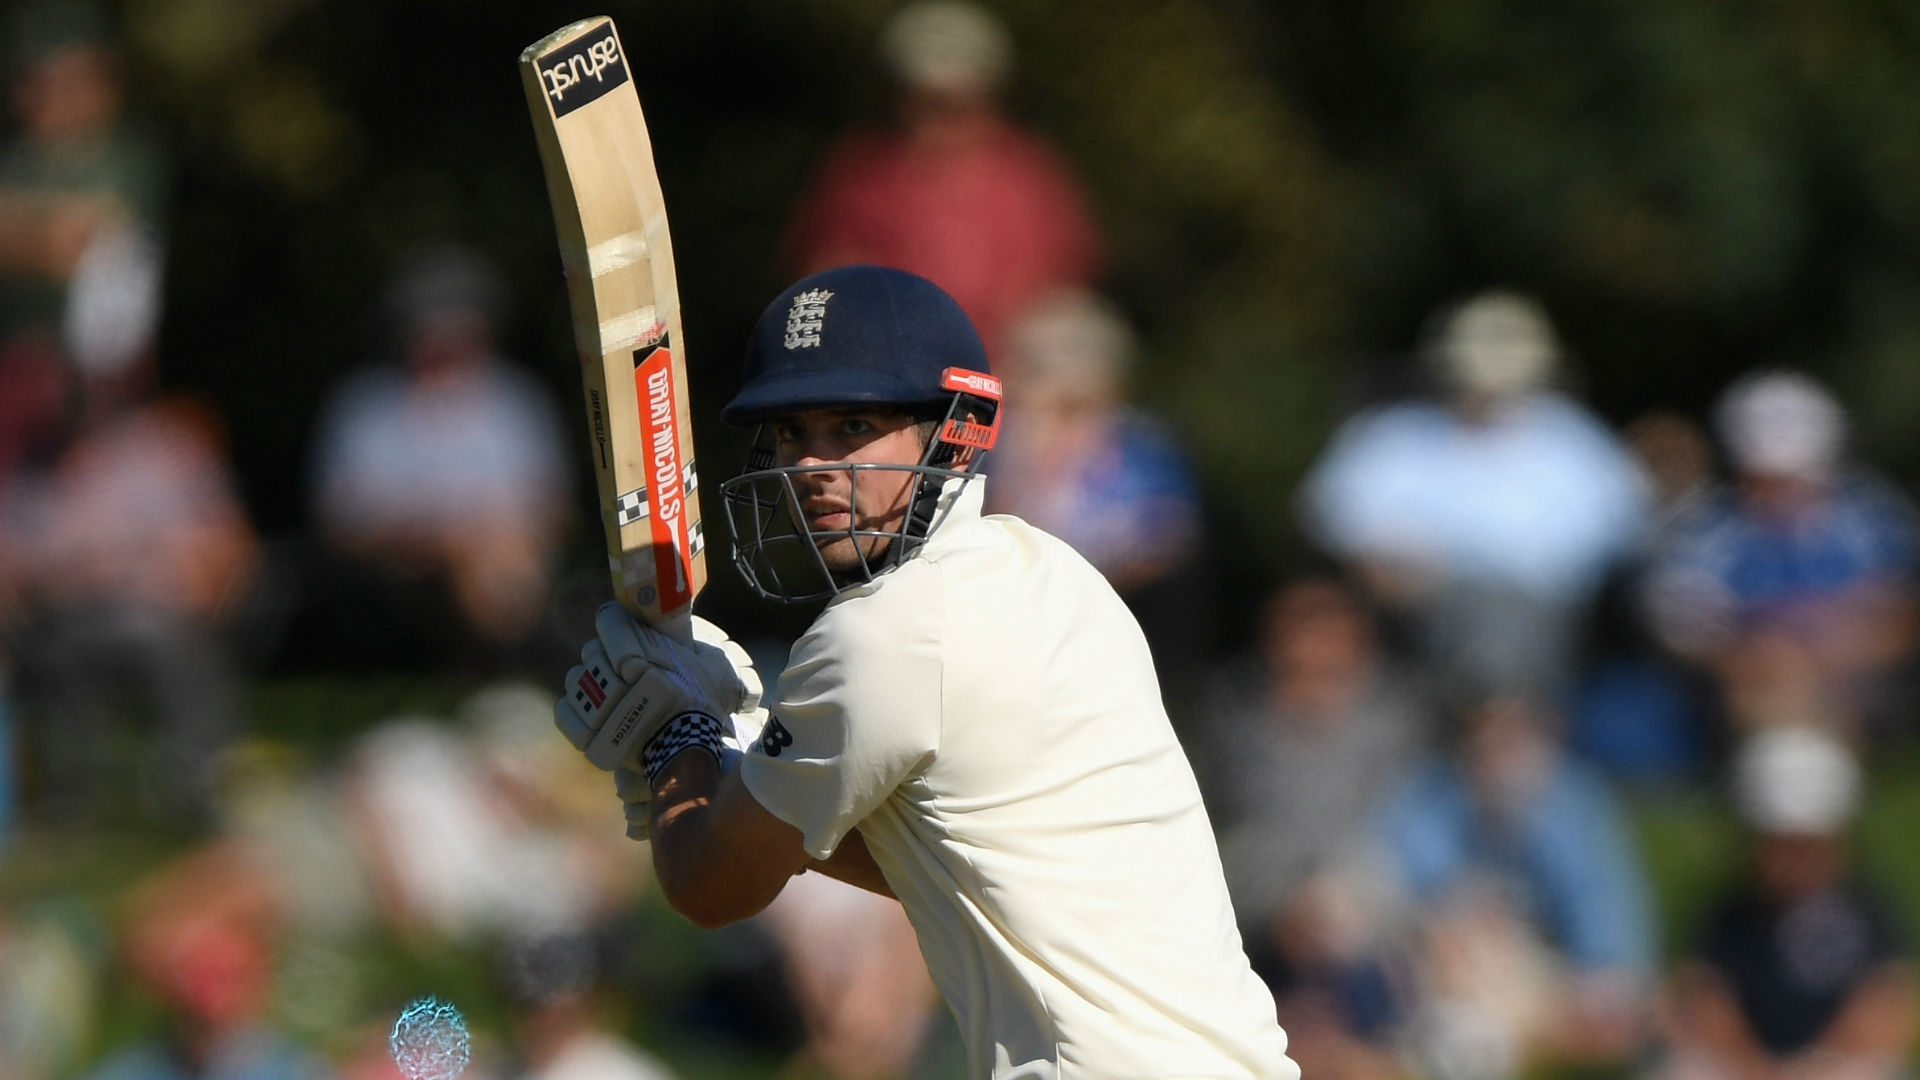 Despite scoring just 23 runs in the two-match series against New Zealand, Alastair Cook remains hungry to play Test cricket for England.